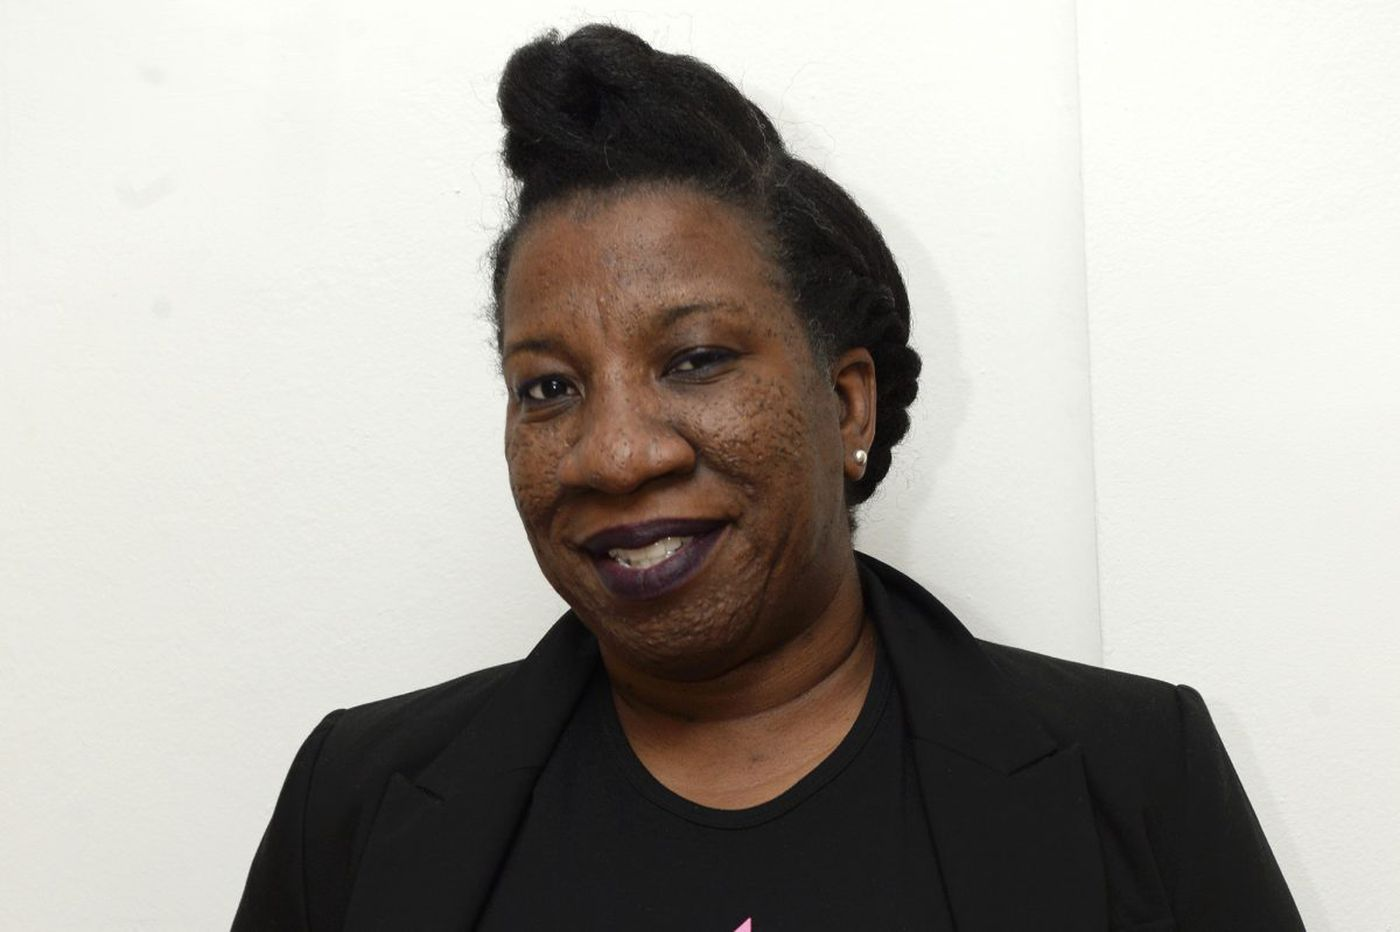 #MeToo Founder Tarana Burke will be a special guest at Times Square on New Year's Eve